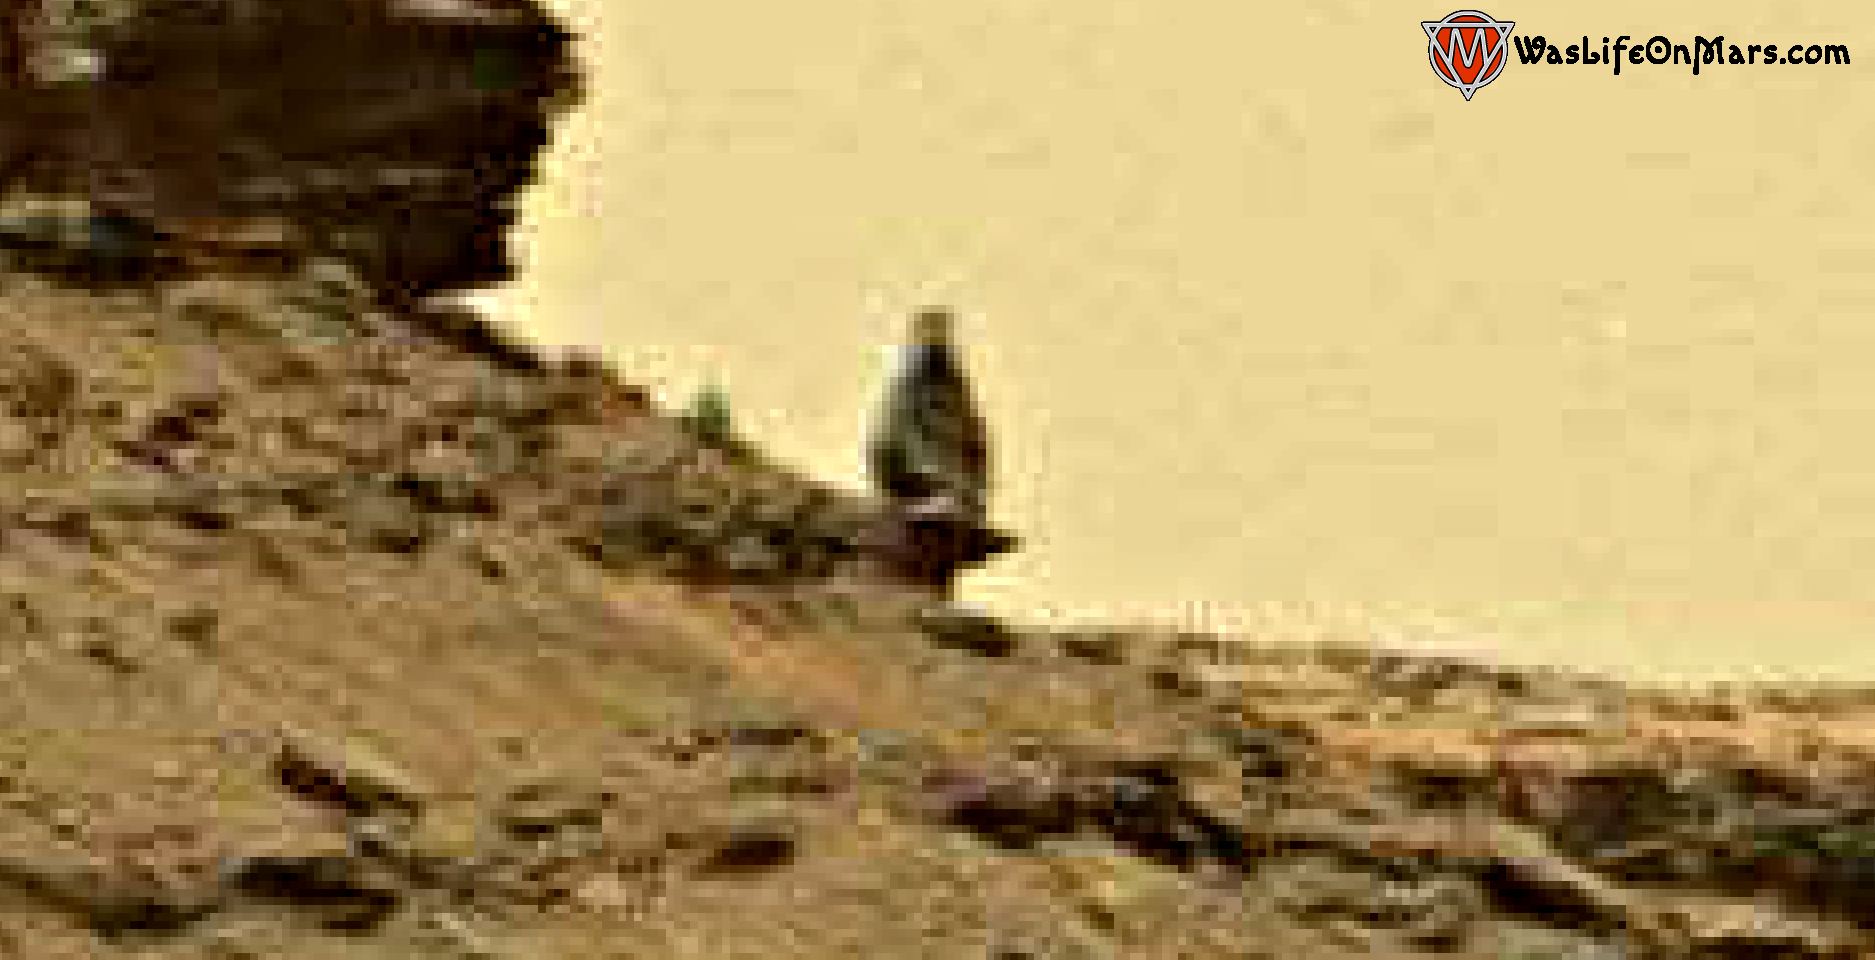 mars sol 1378 anomaly-artifacts 1 was life on mars